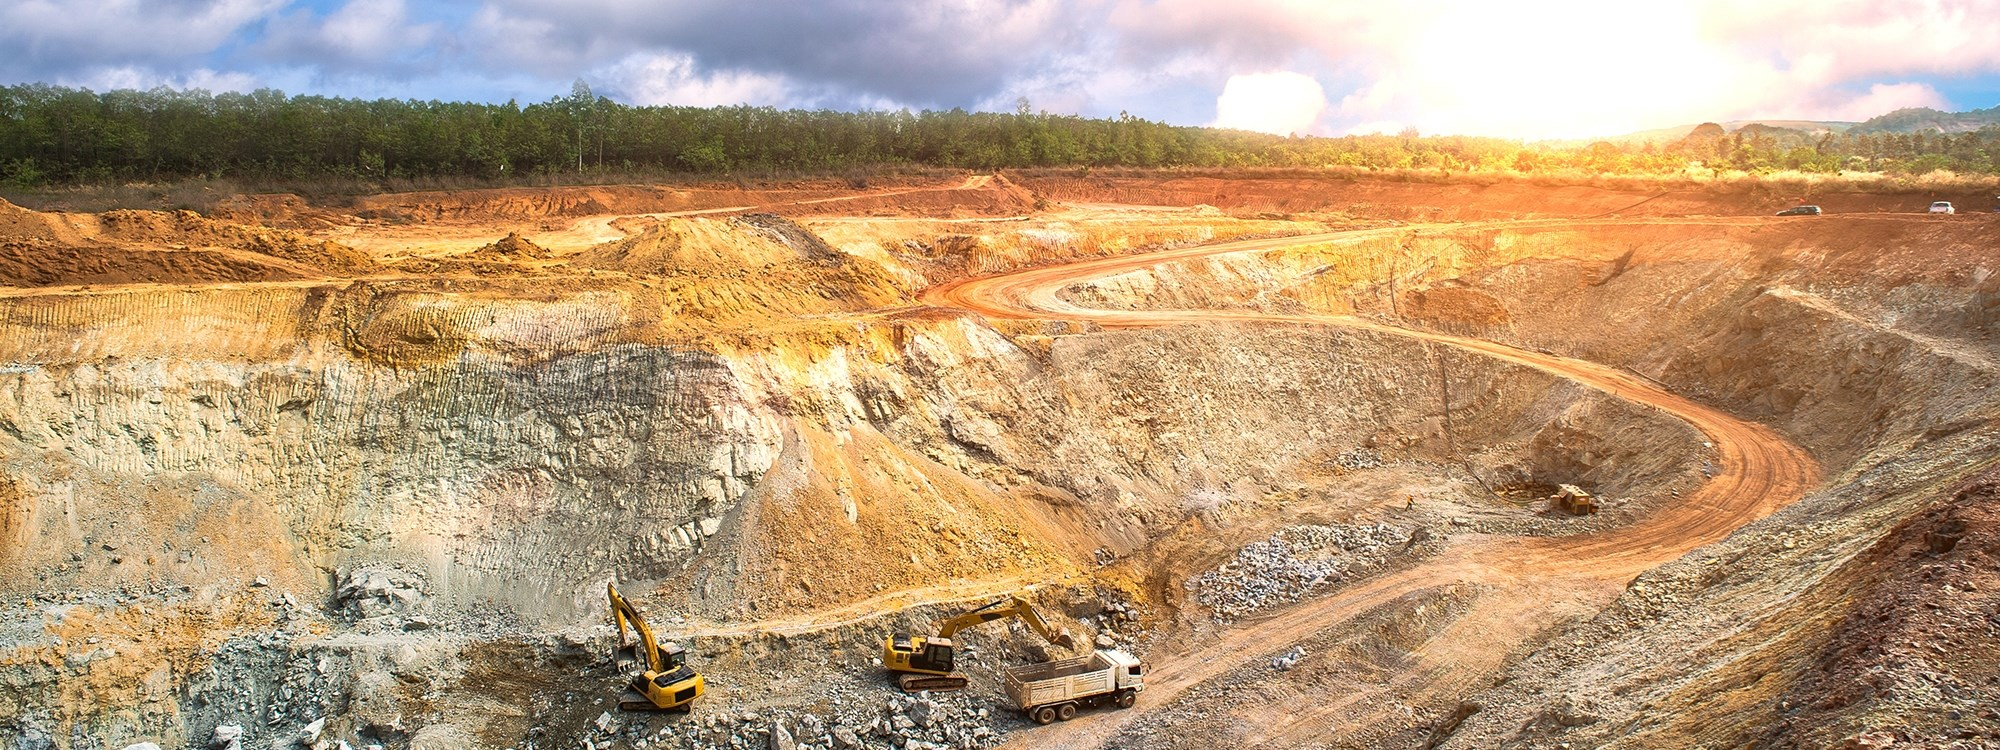 <strong>The Mineral Environment</strong><br><span>As chartered mineral surveyors we have the expertise to provide survey solutions in the coal, sand, stone, chalk or landfill environments.</span>